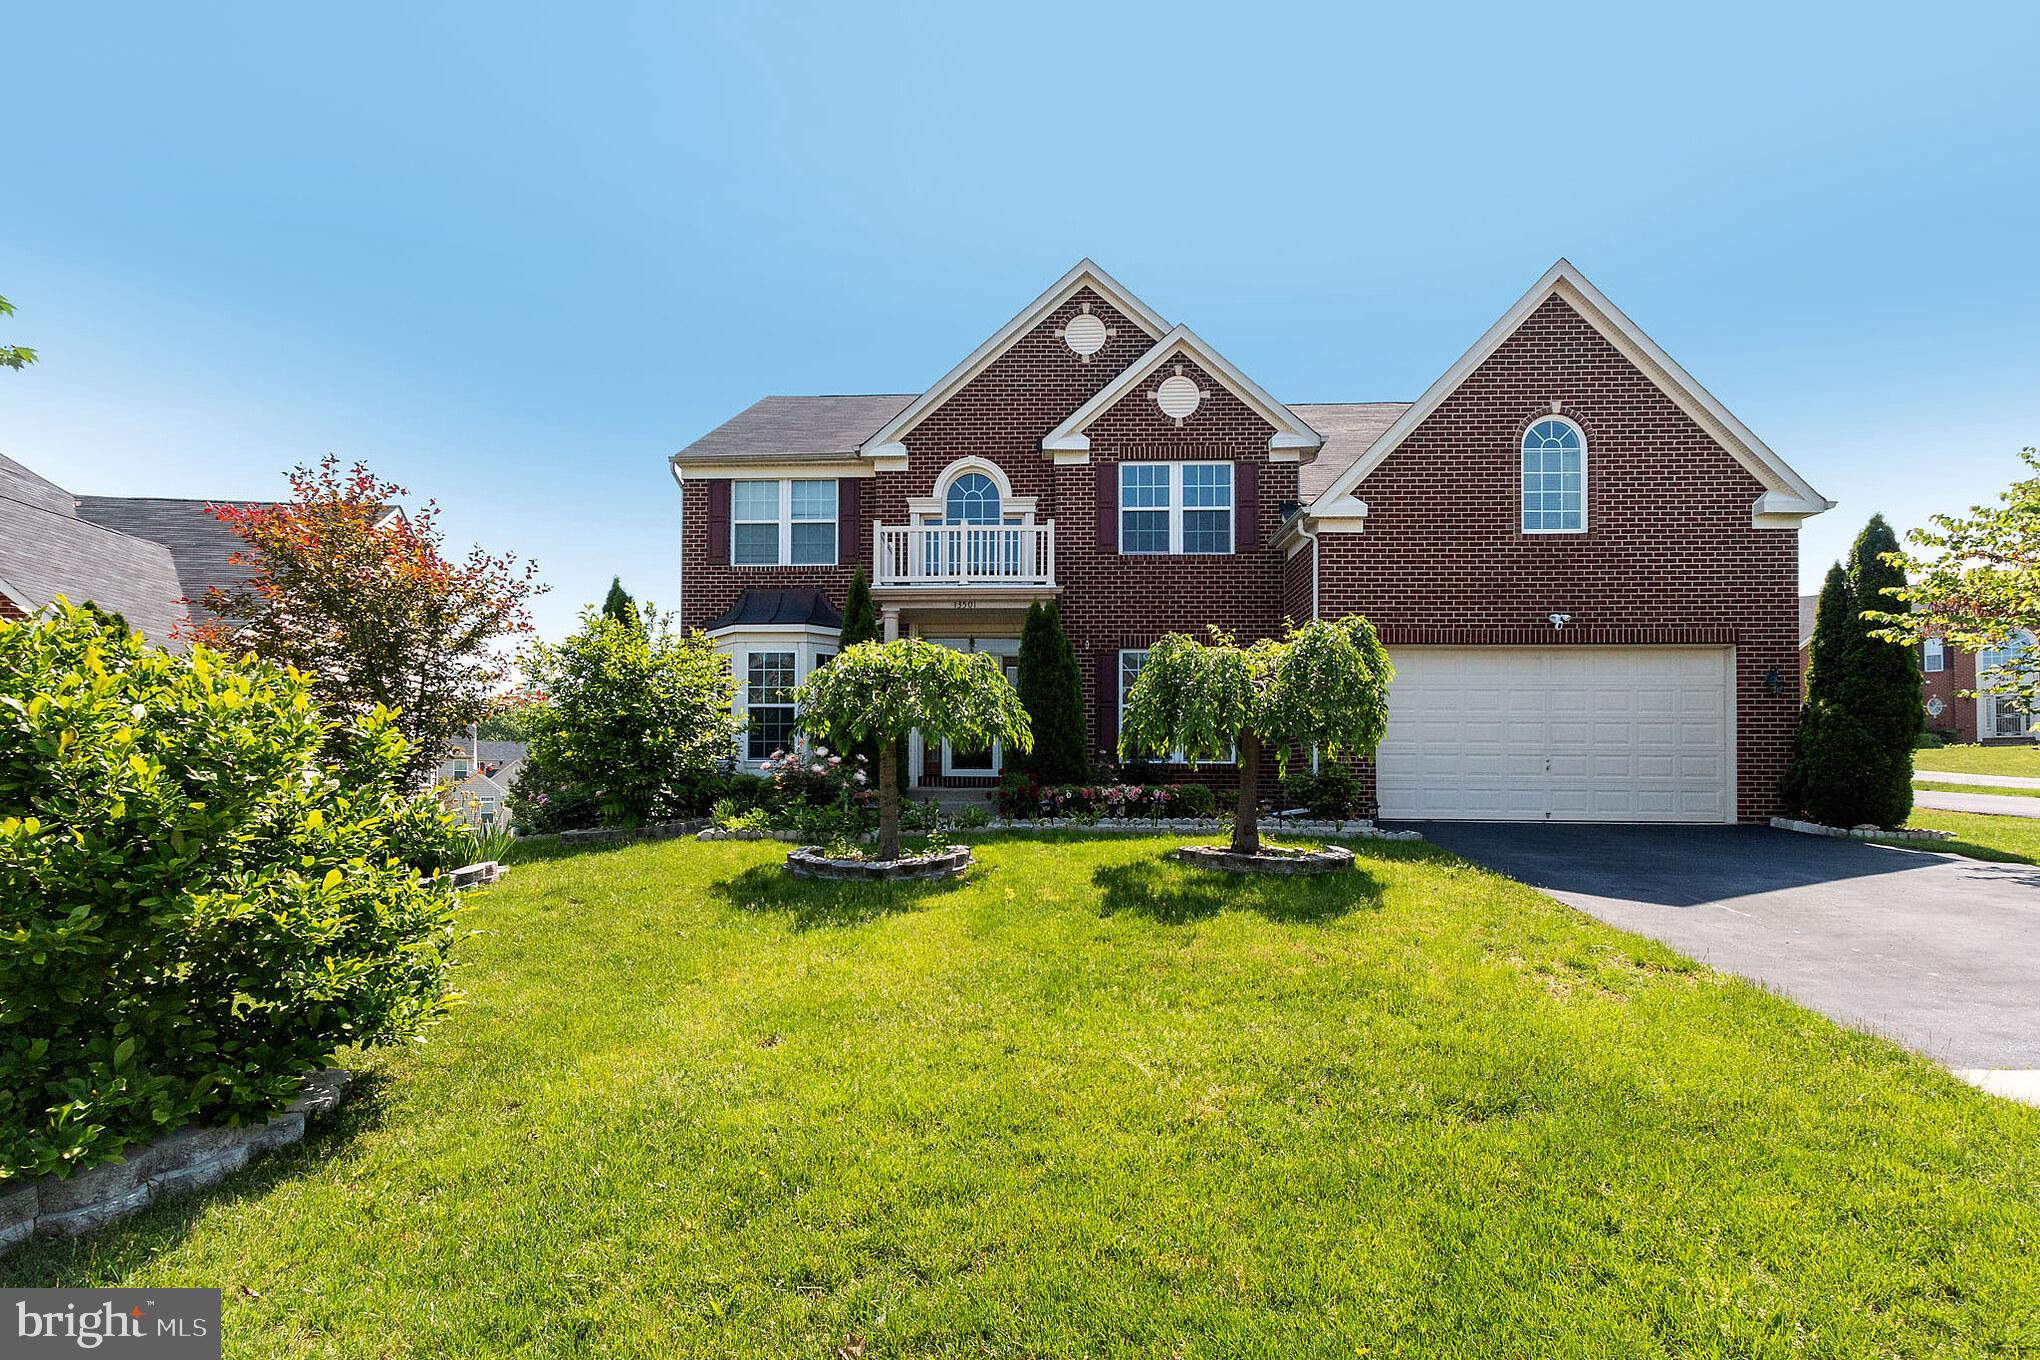 13501 OAKLANDS MANOR DRIVE, LAUREL, MD 20708